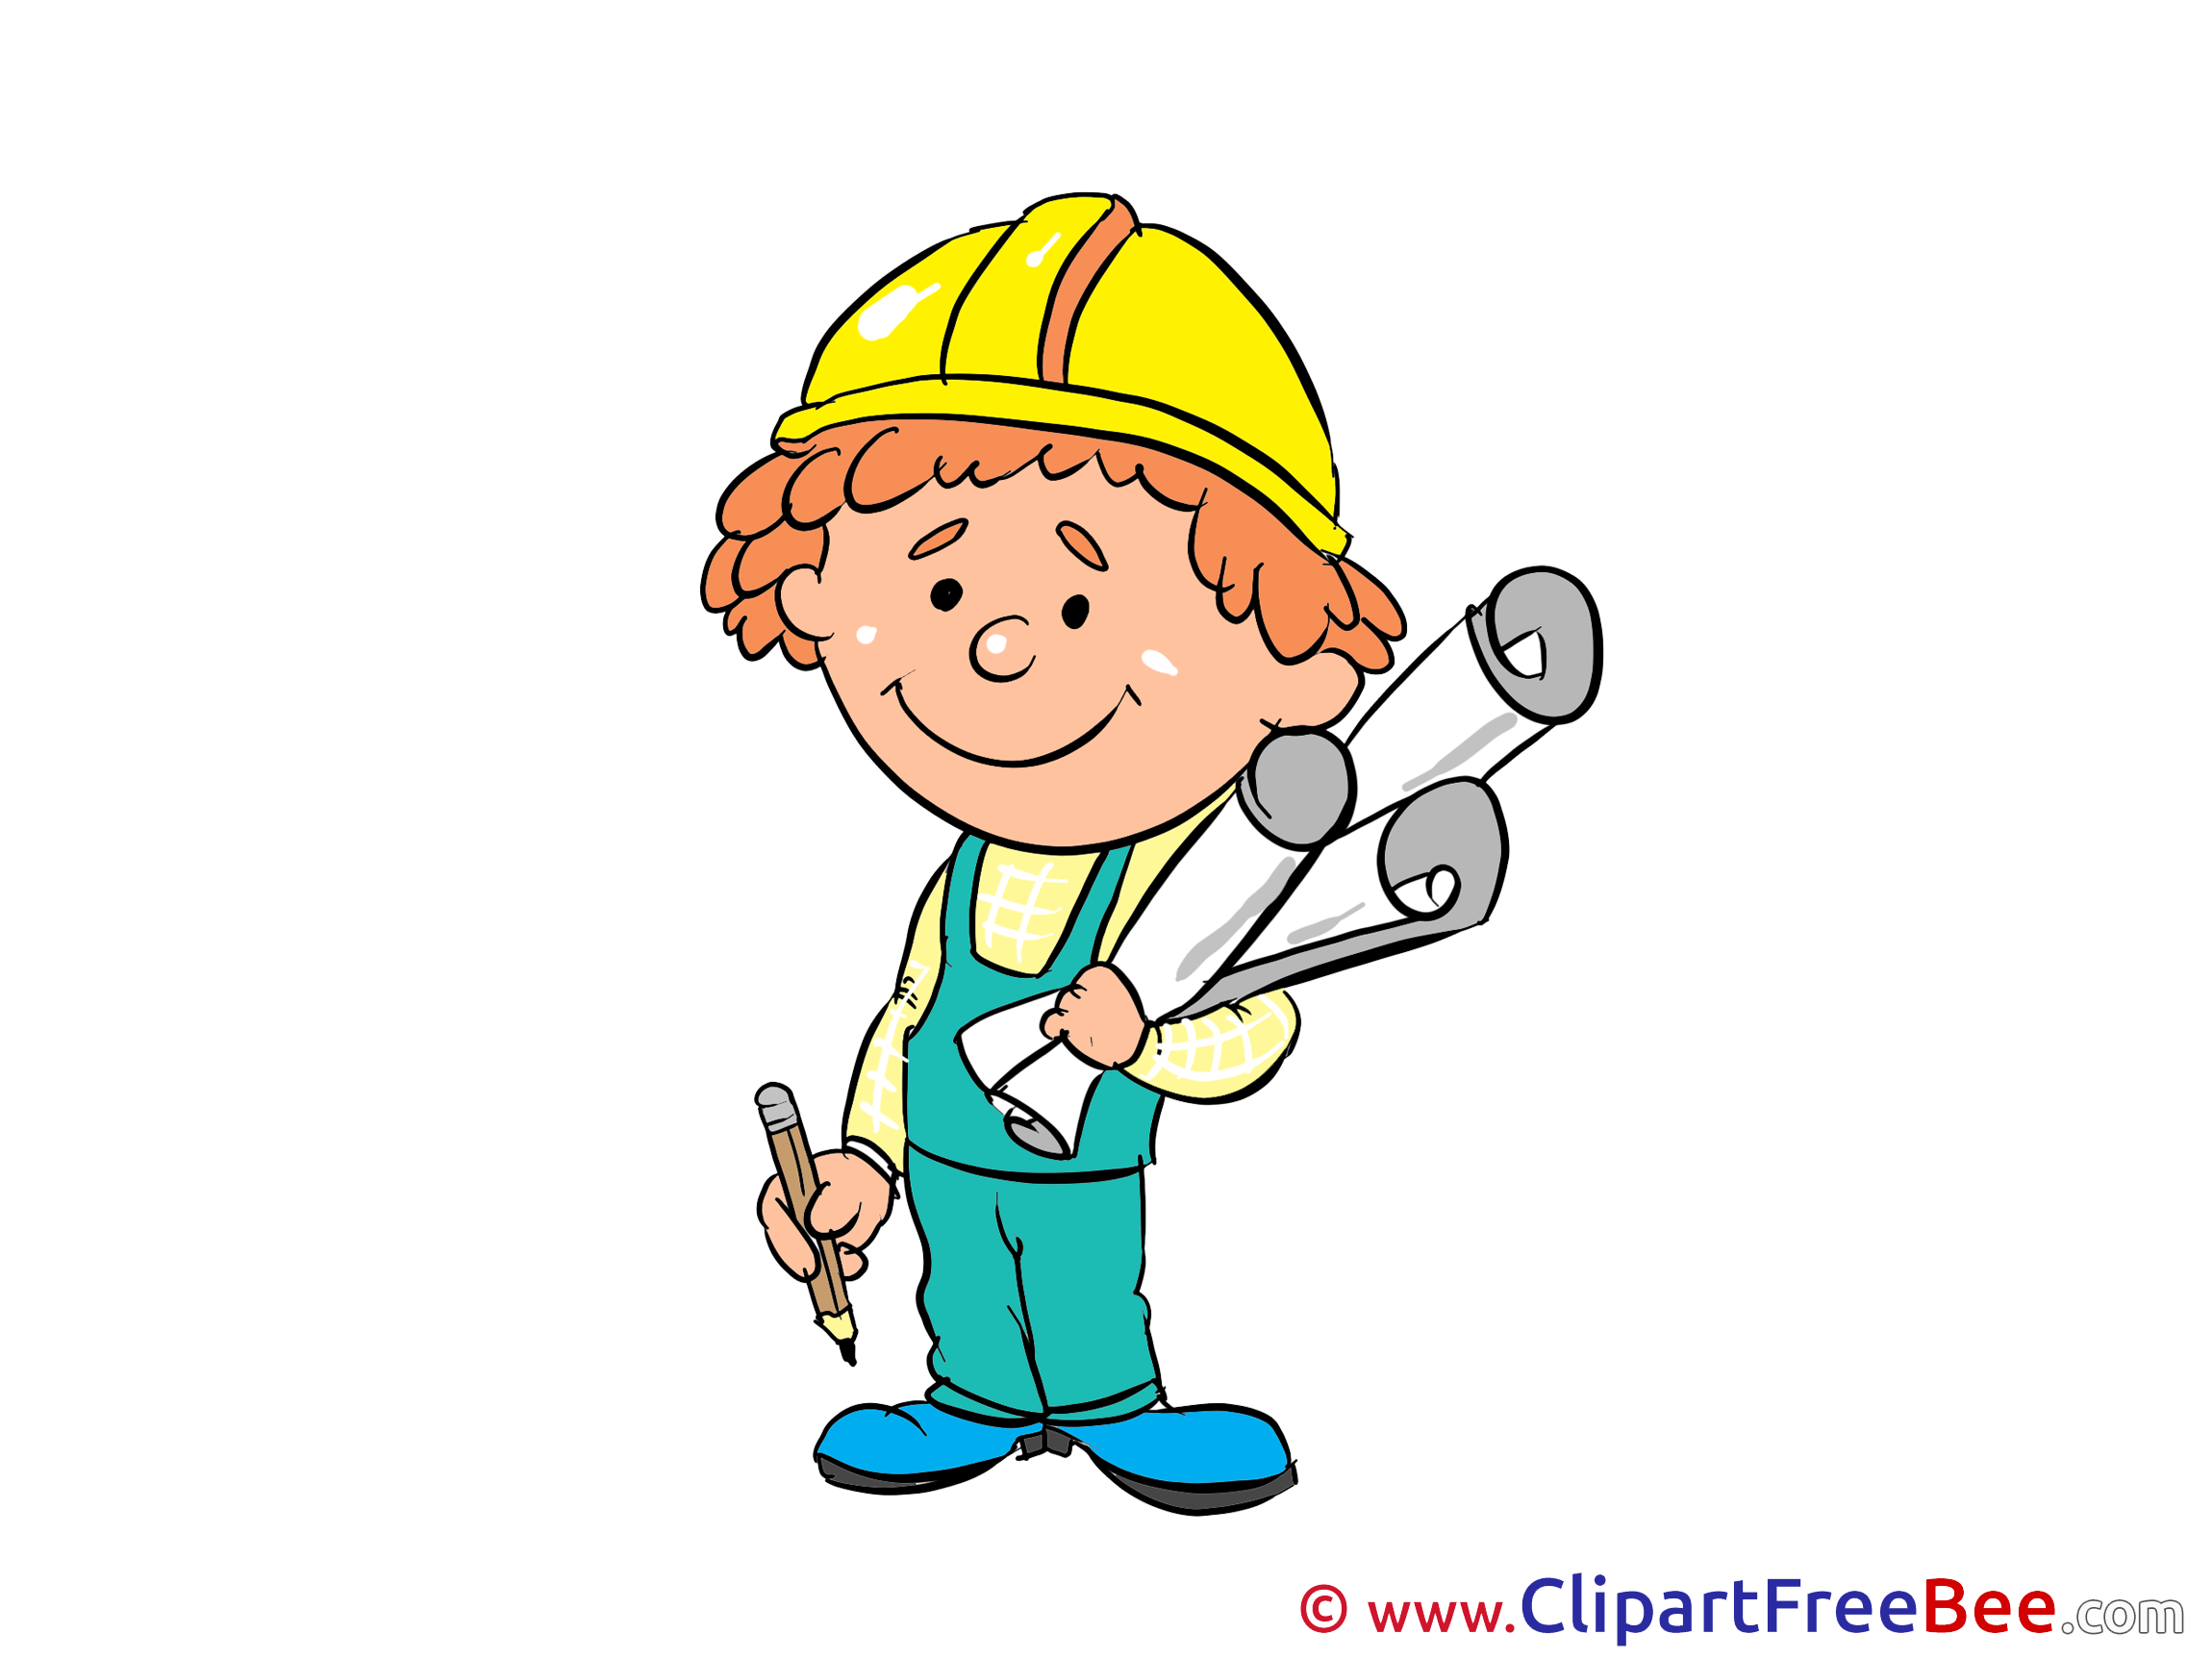 Architect clipart. Free printable cliparts and